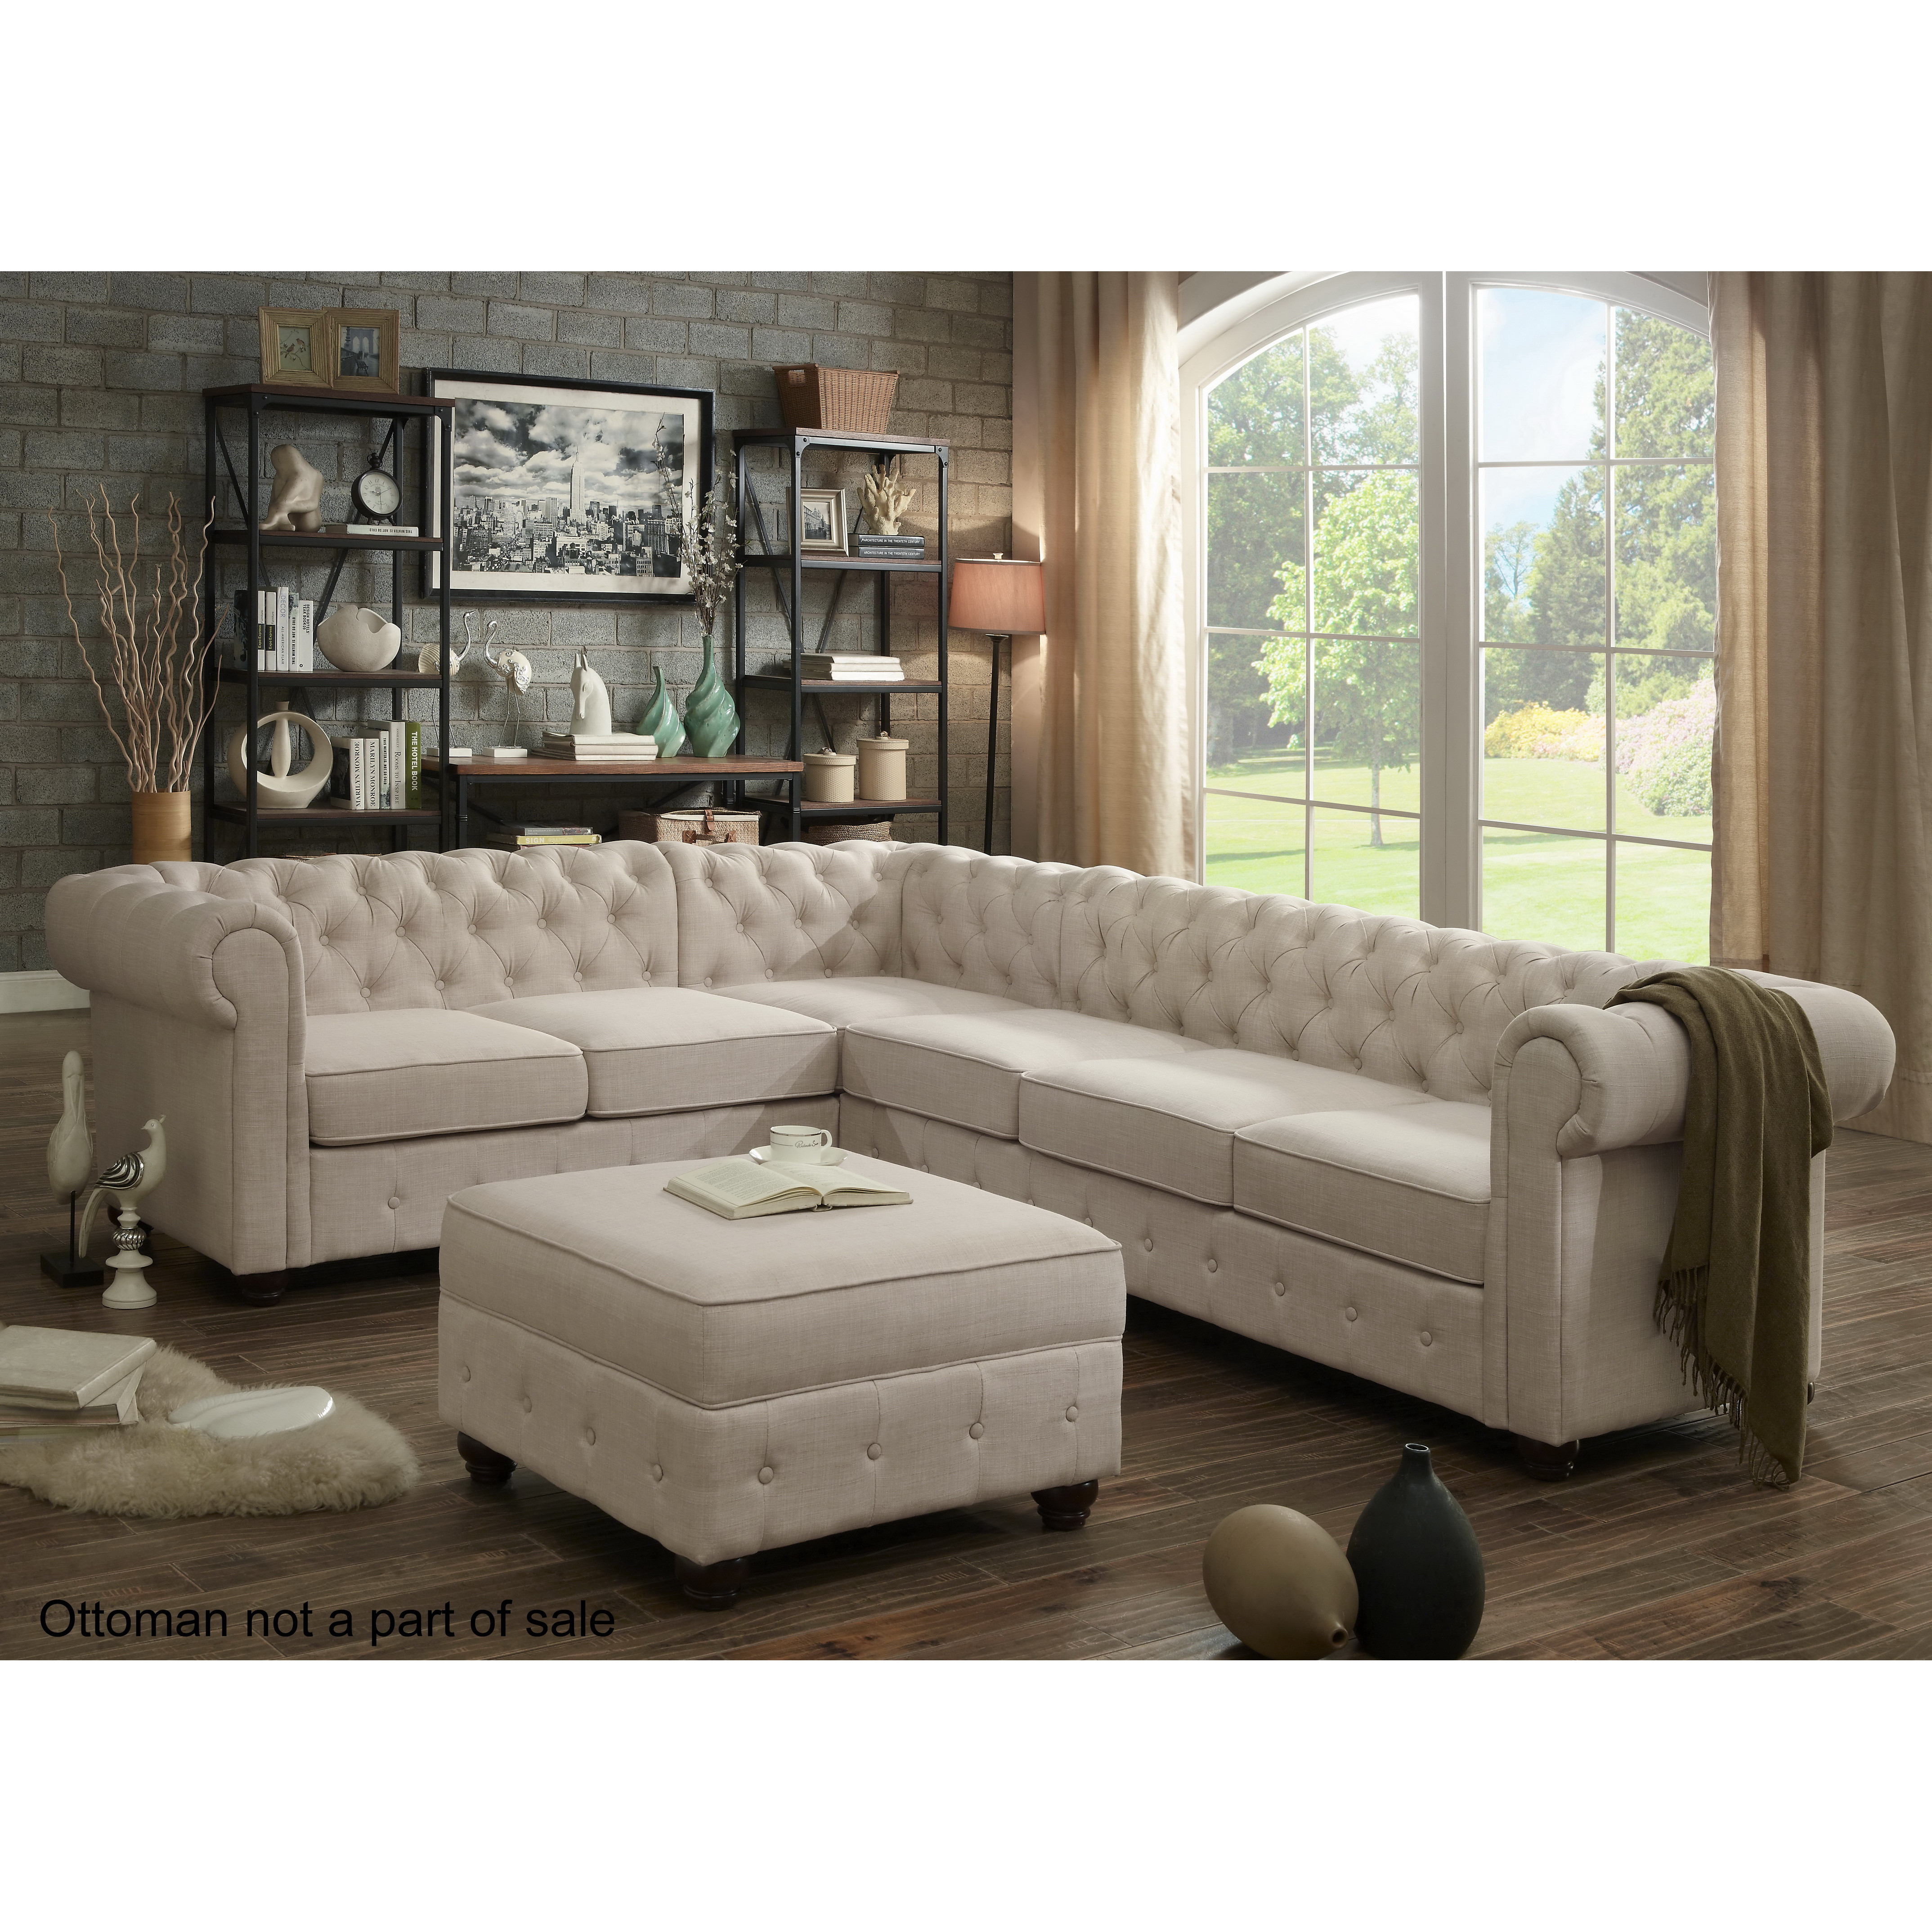 Best ideas about Wayfair Sectional Sofa . Save or Pin Mulhouse Furniture Garcia Sectional & Reviews Now.